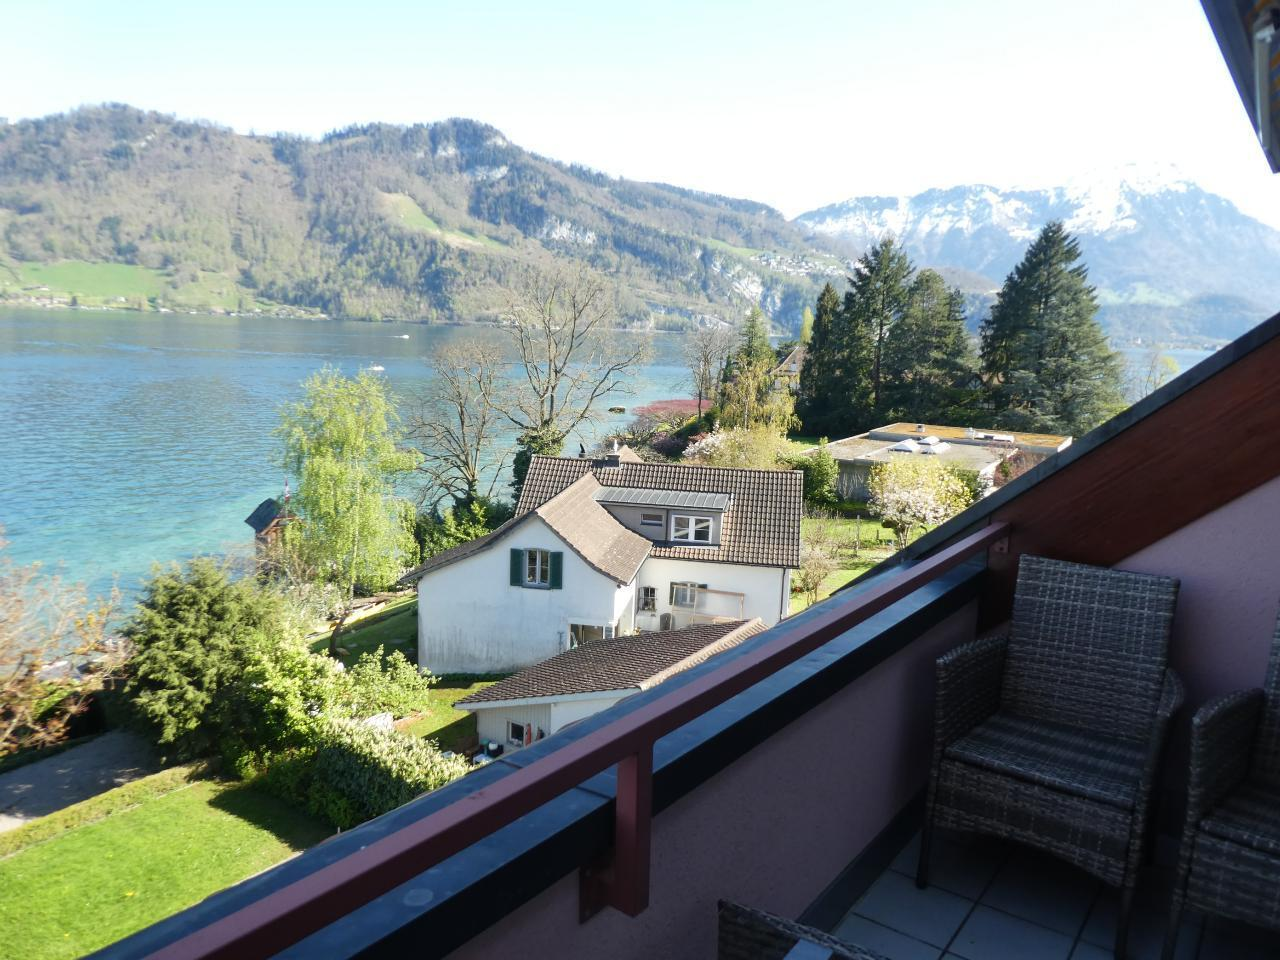 Phantastic view on Lake Lucerne